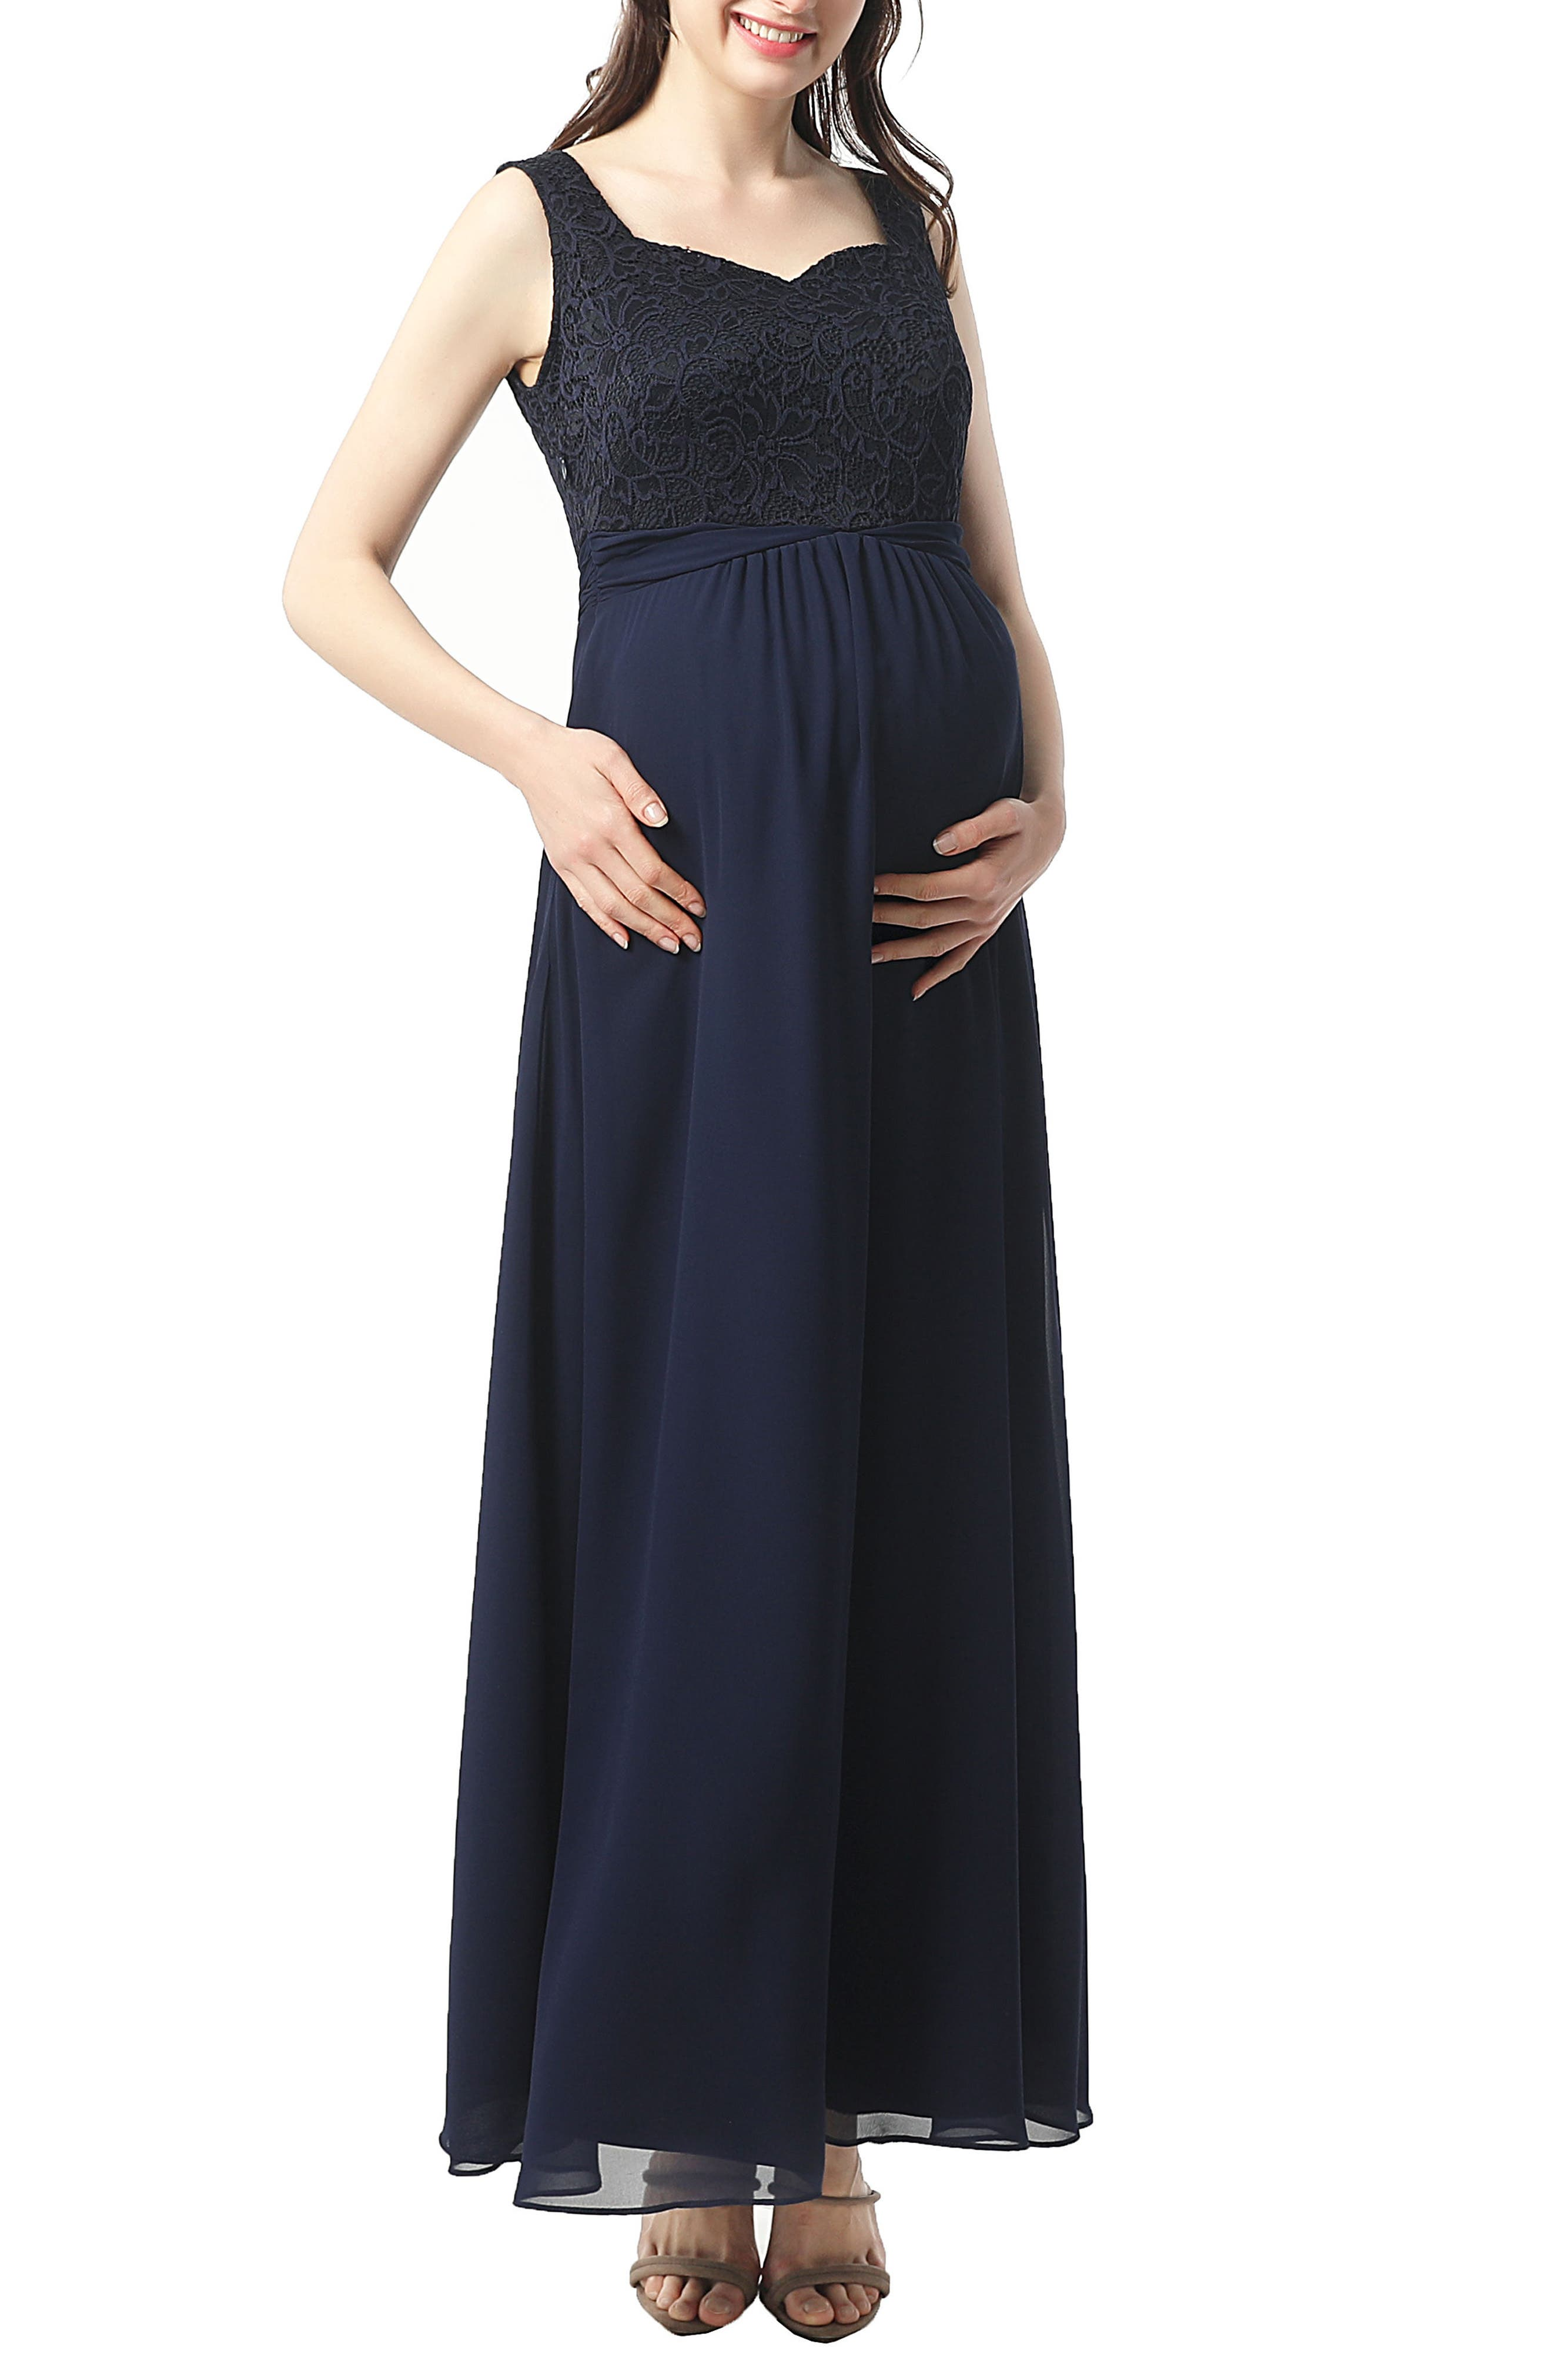 Kyra Maternity Maxi Dress,                             Main thumbnail 1, color,                             Navy